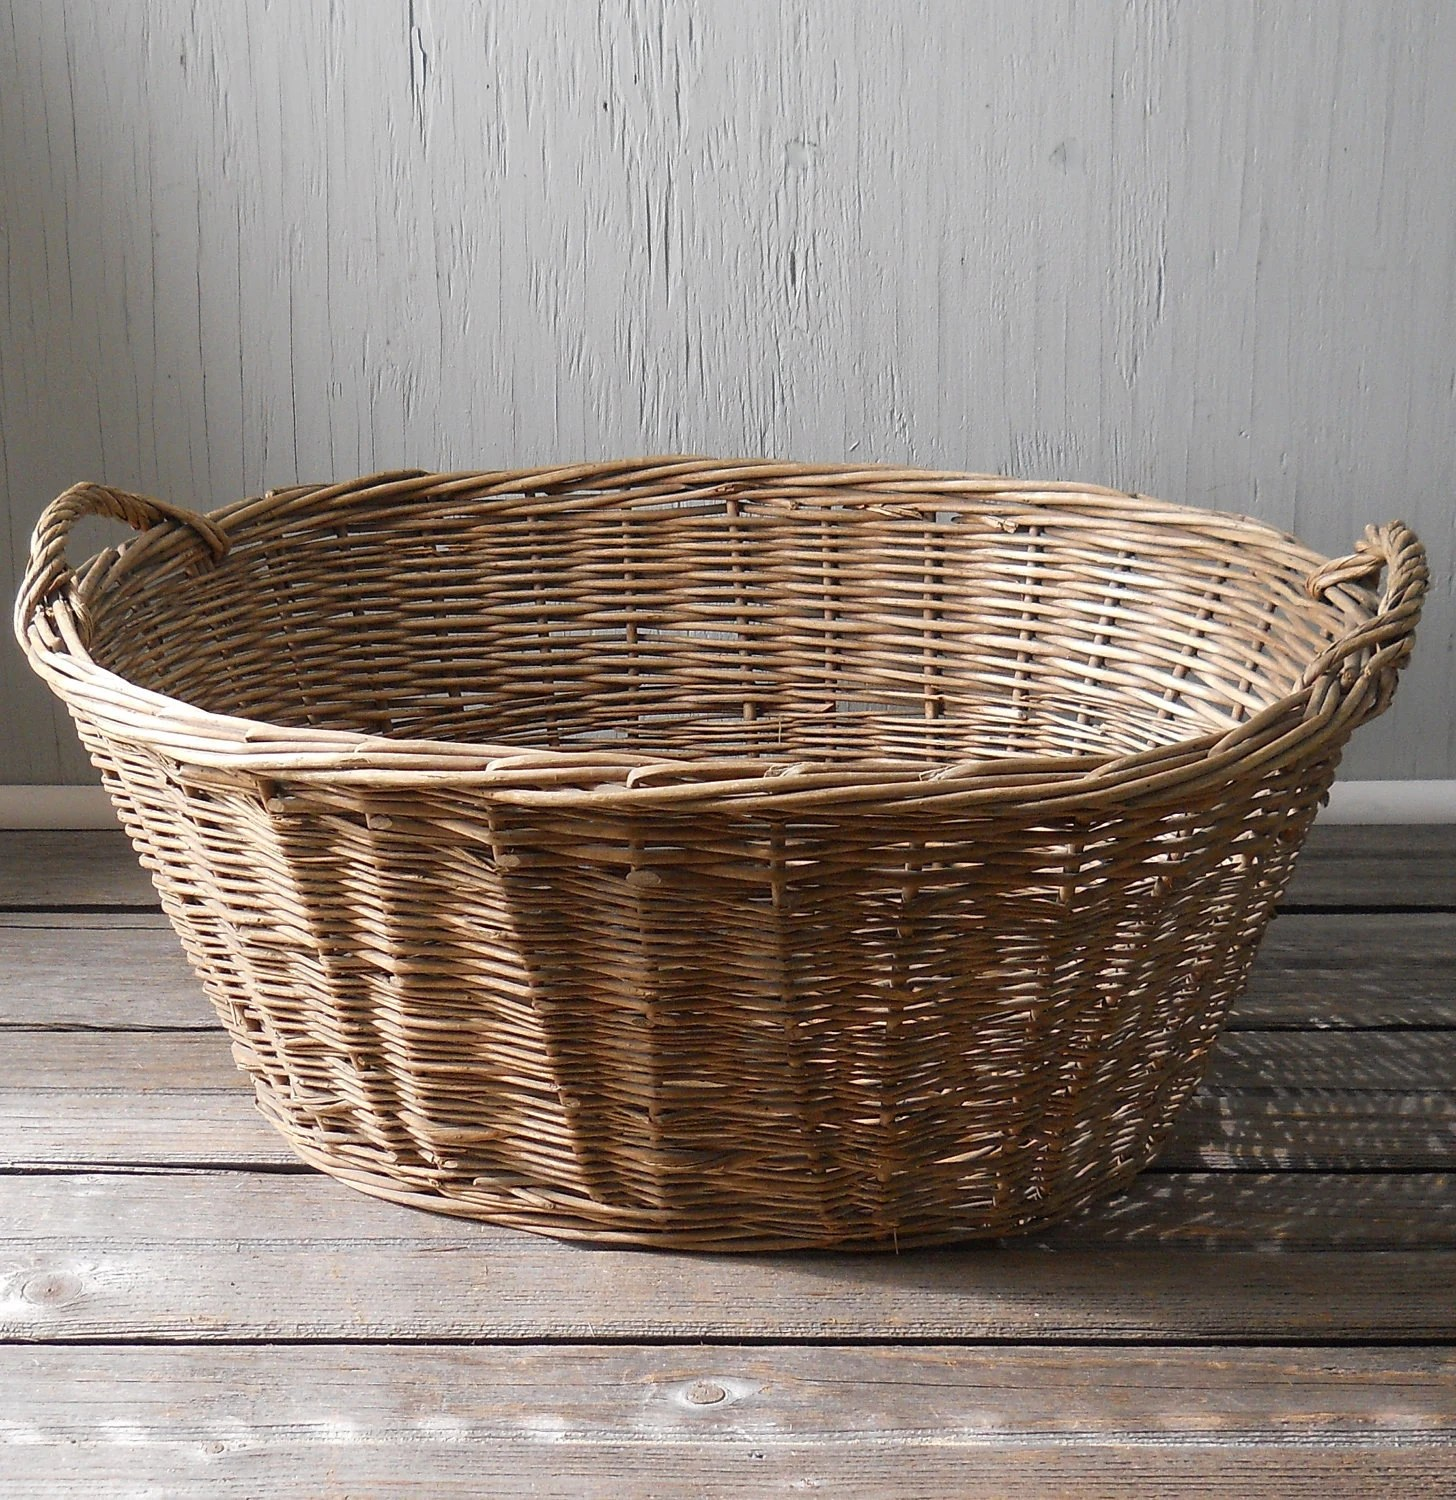 Wicker Laundry Baskets Vintage Wicker Laundry Basket Large Oval No 1